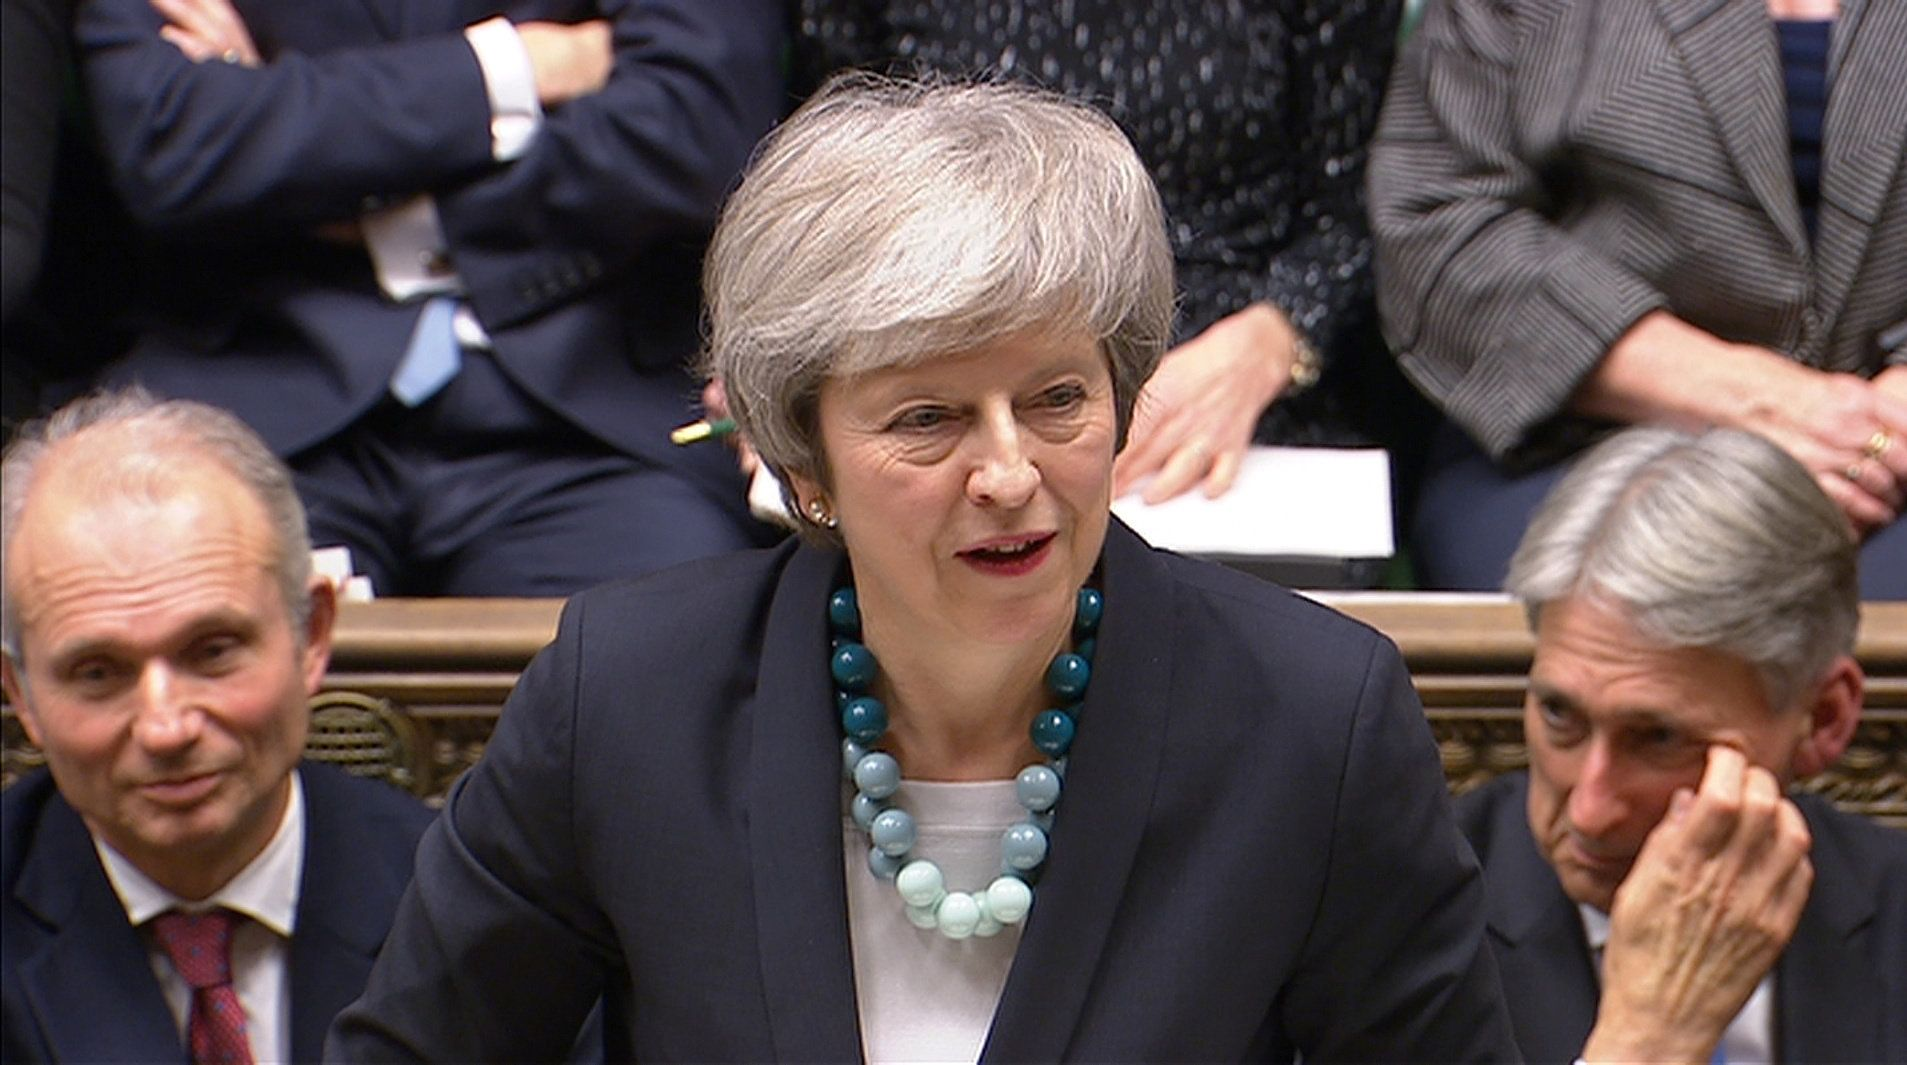 Britain's Prime Minister Theresa May makes a statement in the House of Commons, London, Britain, December 10, 2018. Parliament TV handout via REUTERS  FOR EDITORIAL USE ONLY. NOT FOR SALE FOR MARKETING OR ADVERTISING CAMPAIGNS